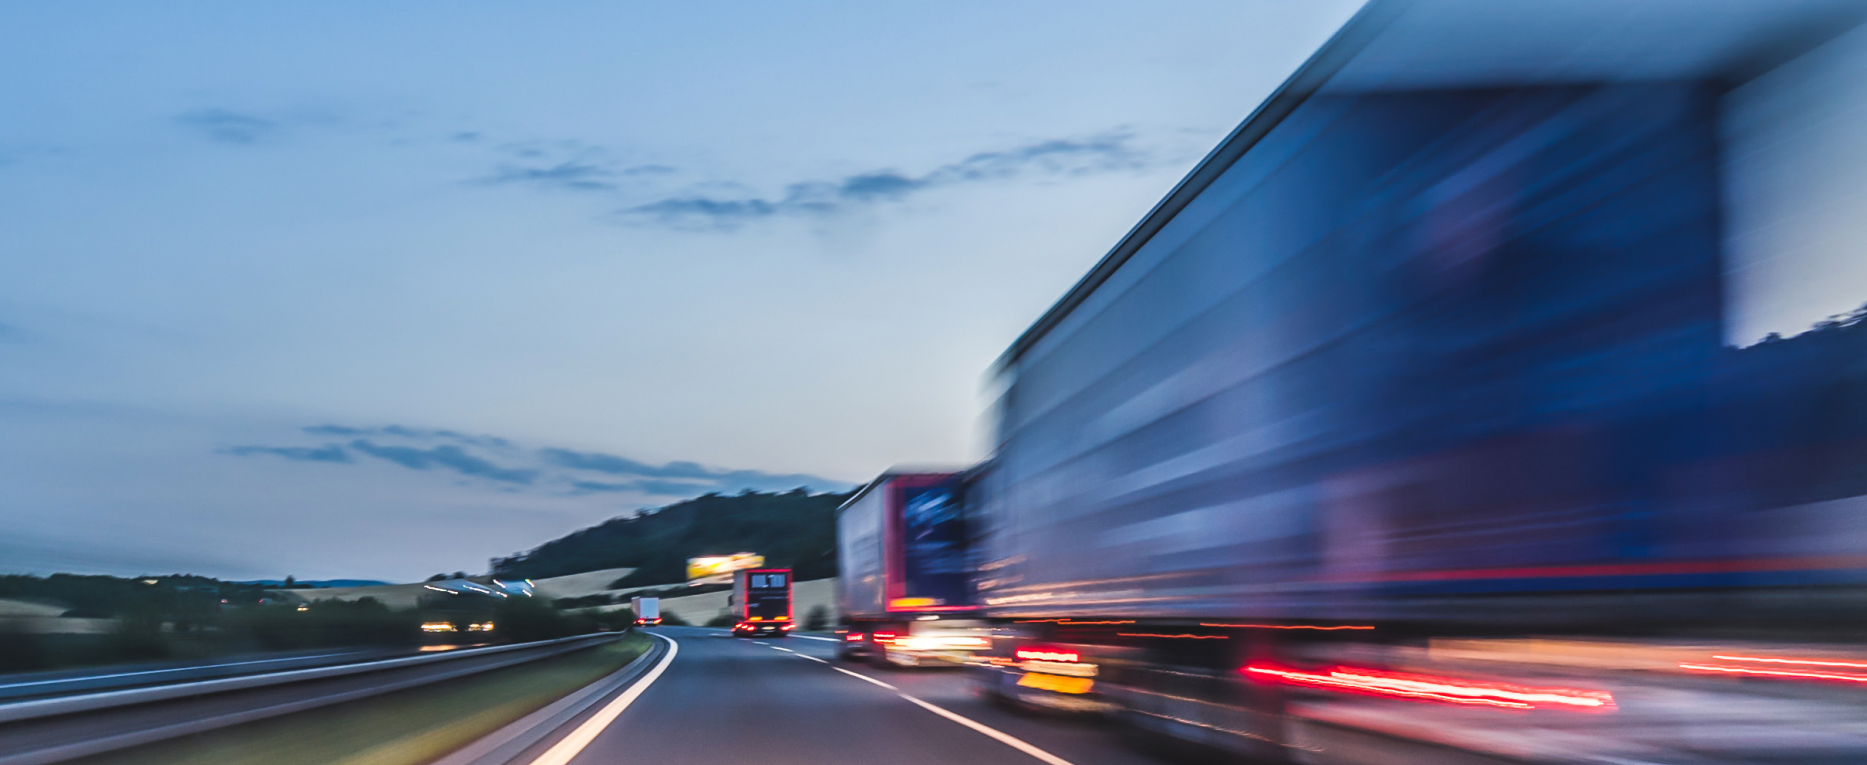 Supply Chain Supply Chains Warehouse Logistics Road Highway - Shutterstock